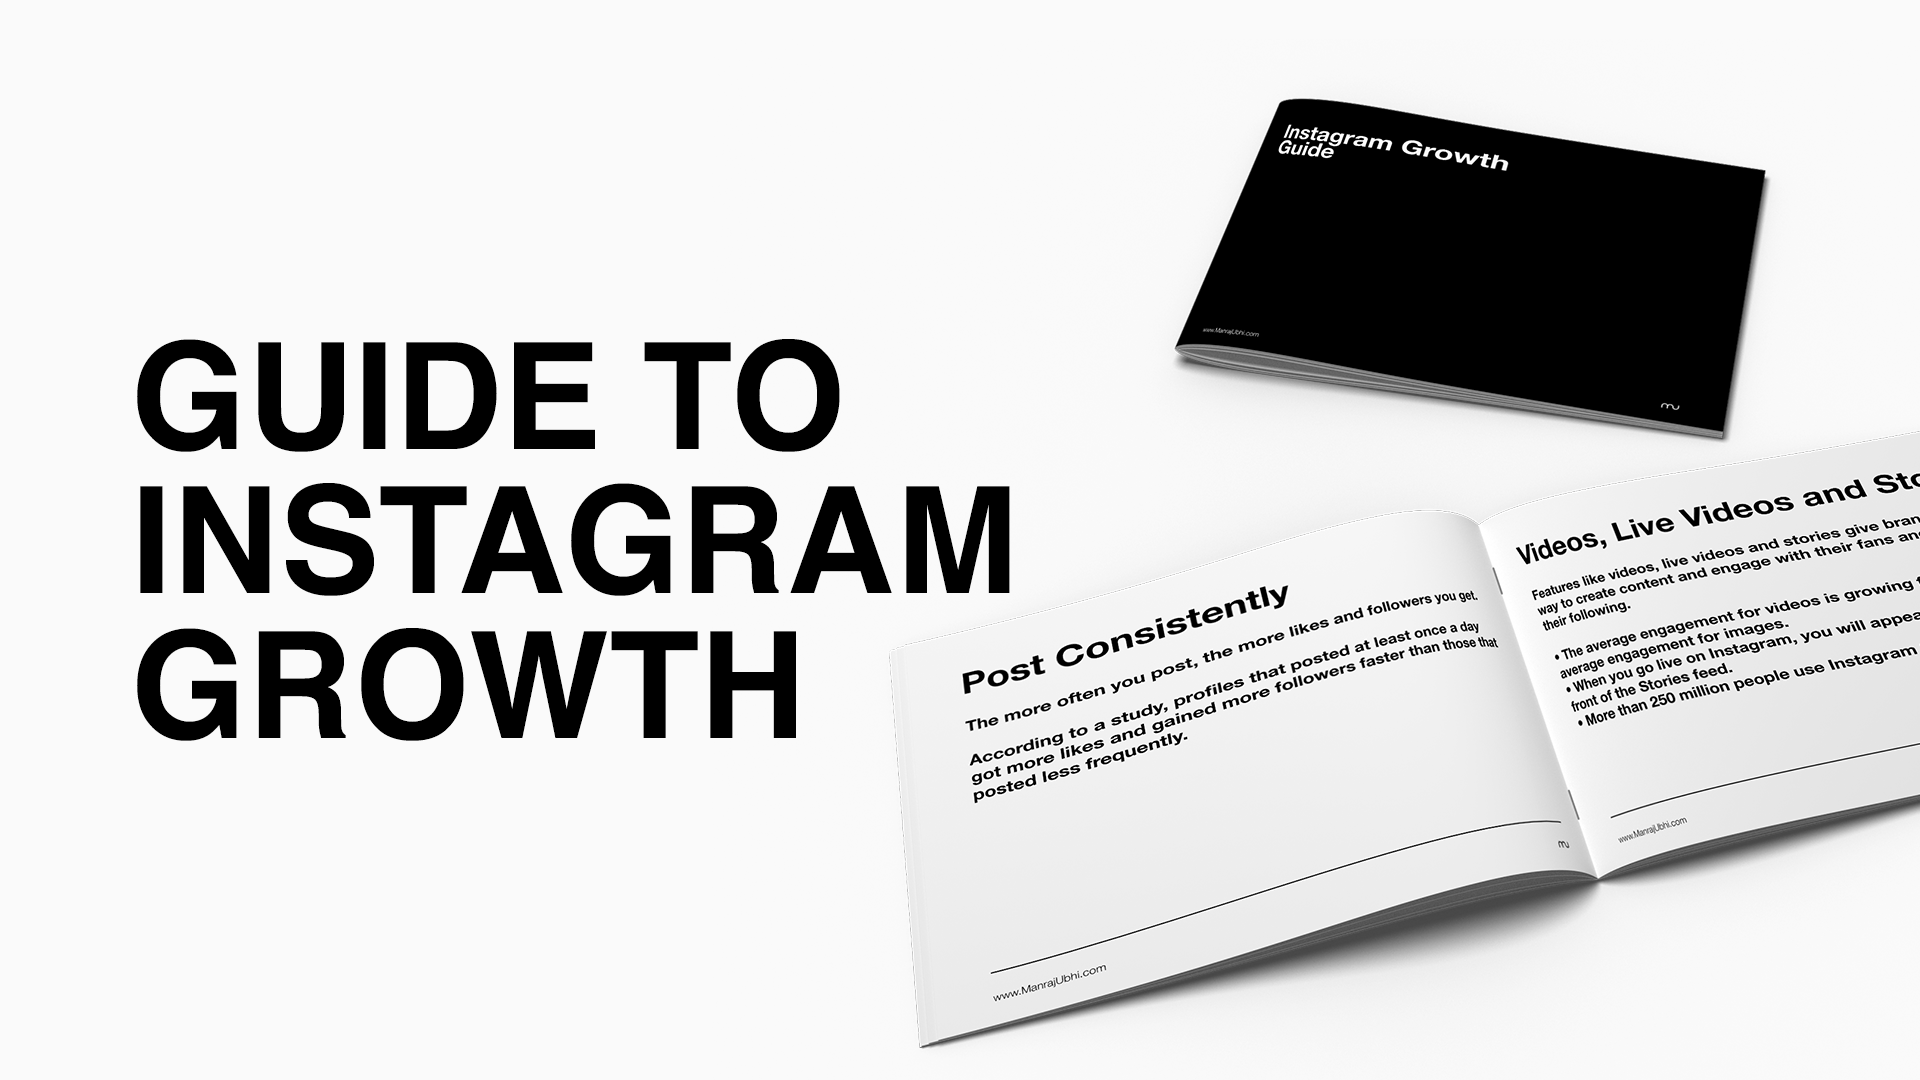 Guide To Instagram Growth - Manraj ubhi